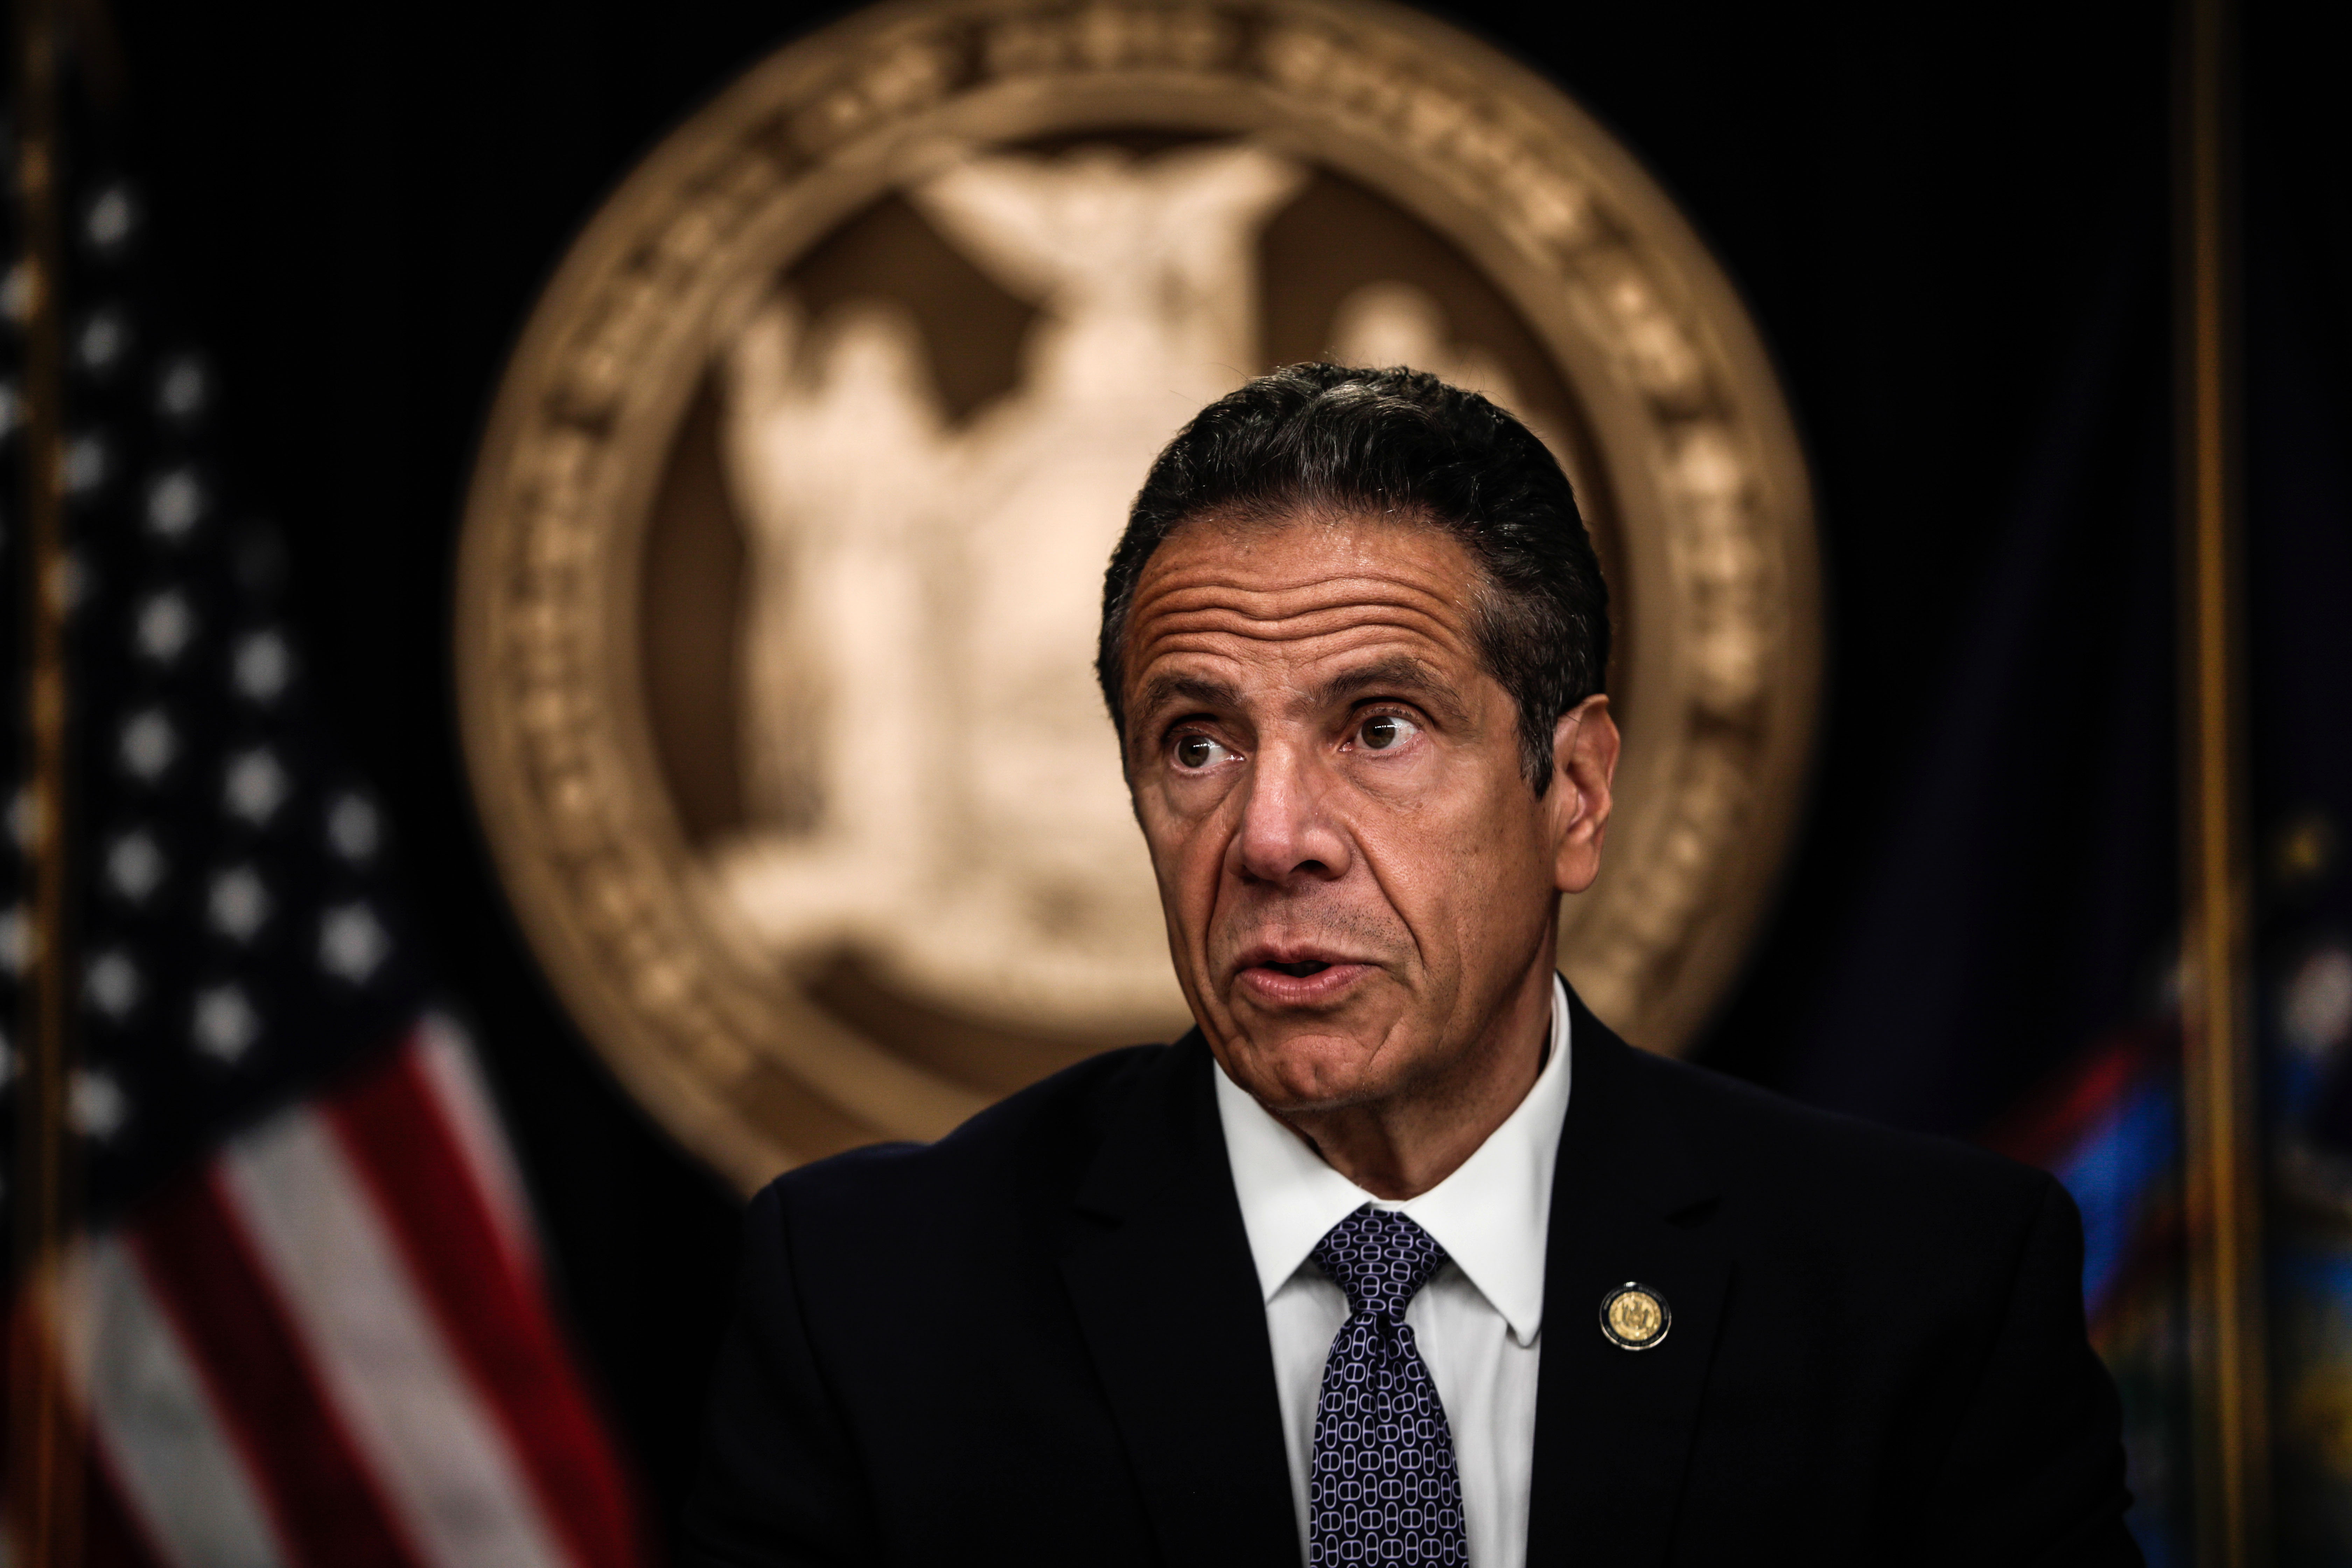 Gov. Andrew Cuomo speaks at a news conference in New York on July 1.